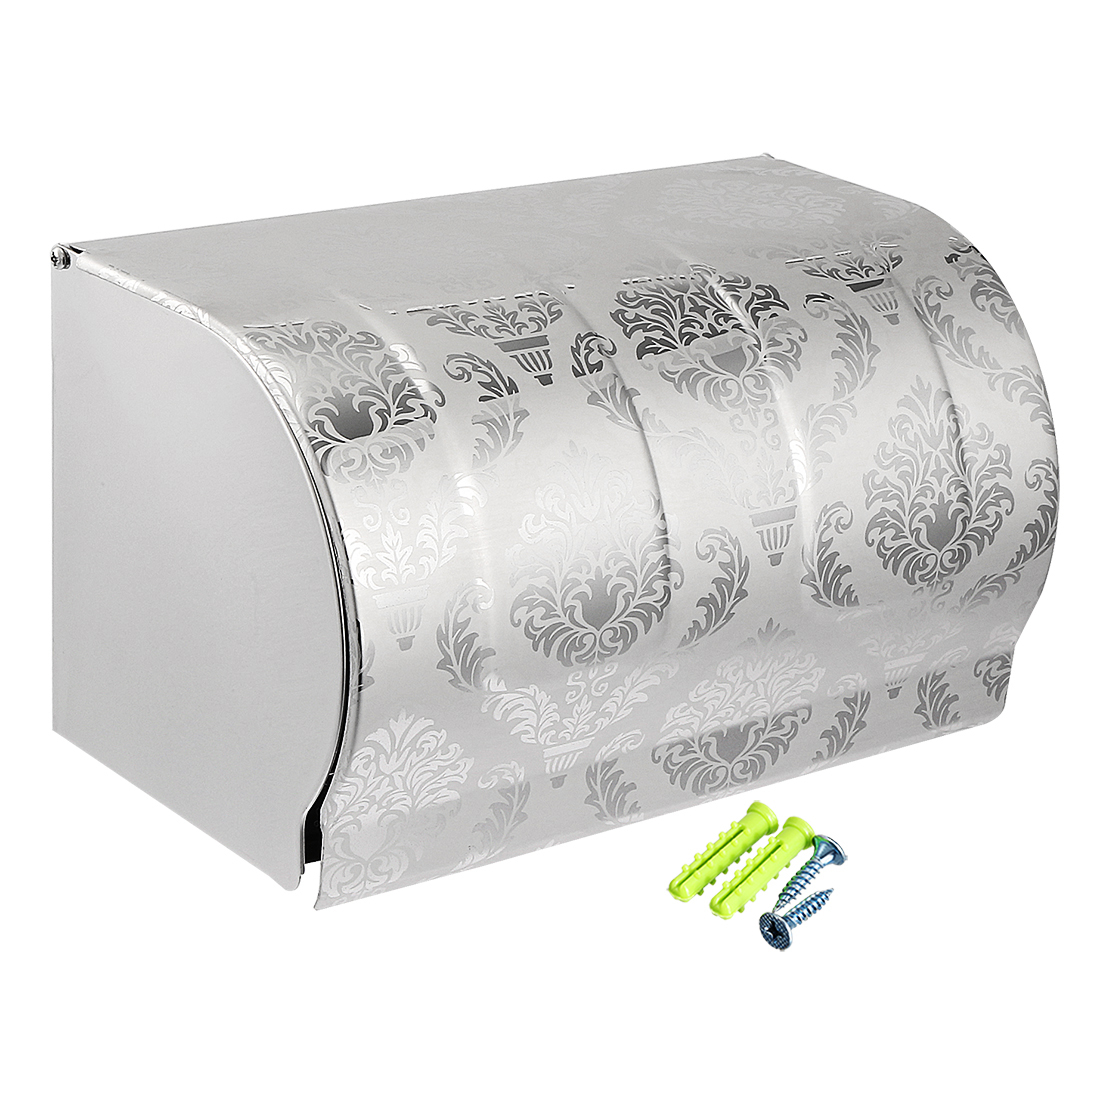 Toilet Paper Roll Holder w Cover Stainless Steel 200mm Wall Mount Glossy Silver Tone